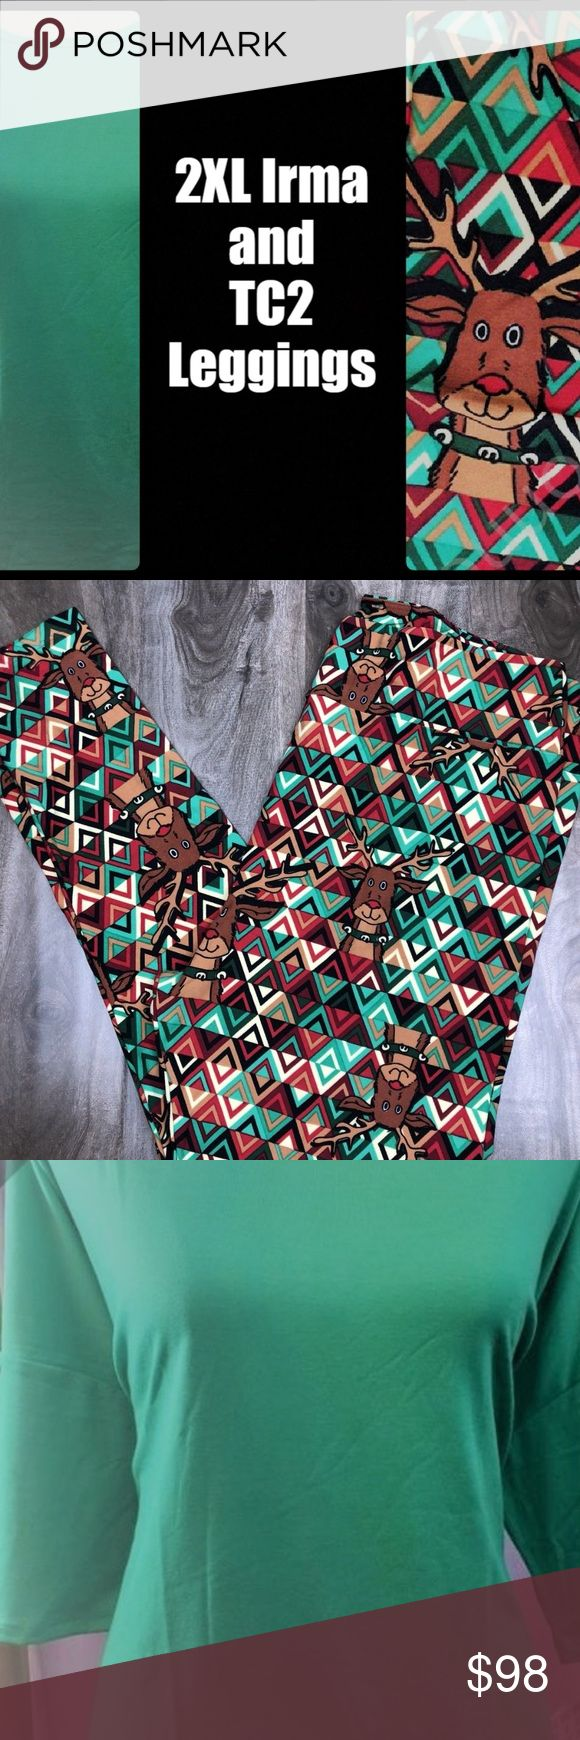 2 pc OUTFIT🍬 LLR Christmas TC Legging & 2x Irma ❄️SAME DAY SHIPPING & HANDLING❄️  🎄2 Piece Outfit GORGEOUS🍬  LuLaRoe 3xl IRMA Soft & stretchy Dolman sleeves Long Tunic length perfect for leggings and ❄️ TC Leggings Christmas 2017 Holiday Reindeer diamonds green brown White Red Black Rudolph (See sizing chart in photos) LuLaRoe Other